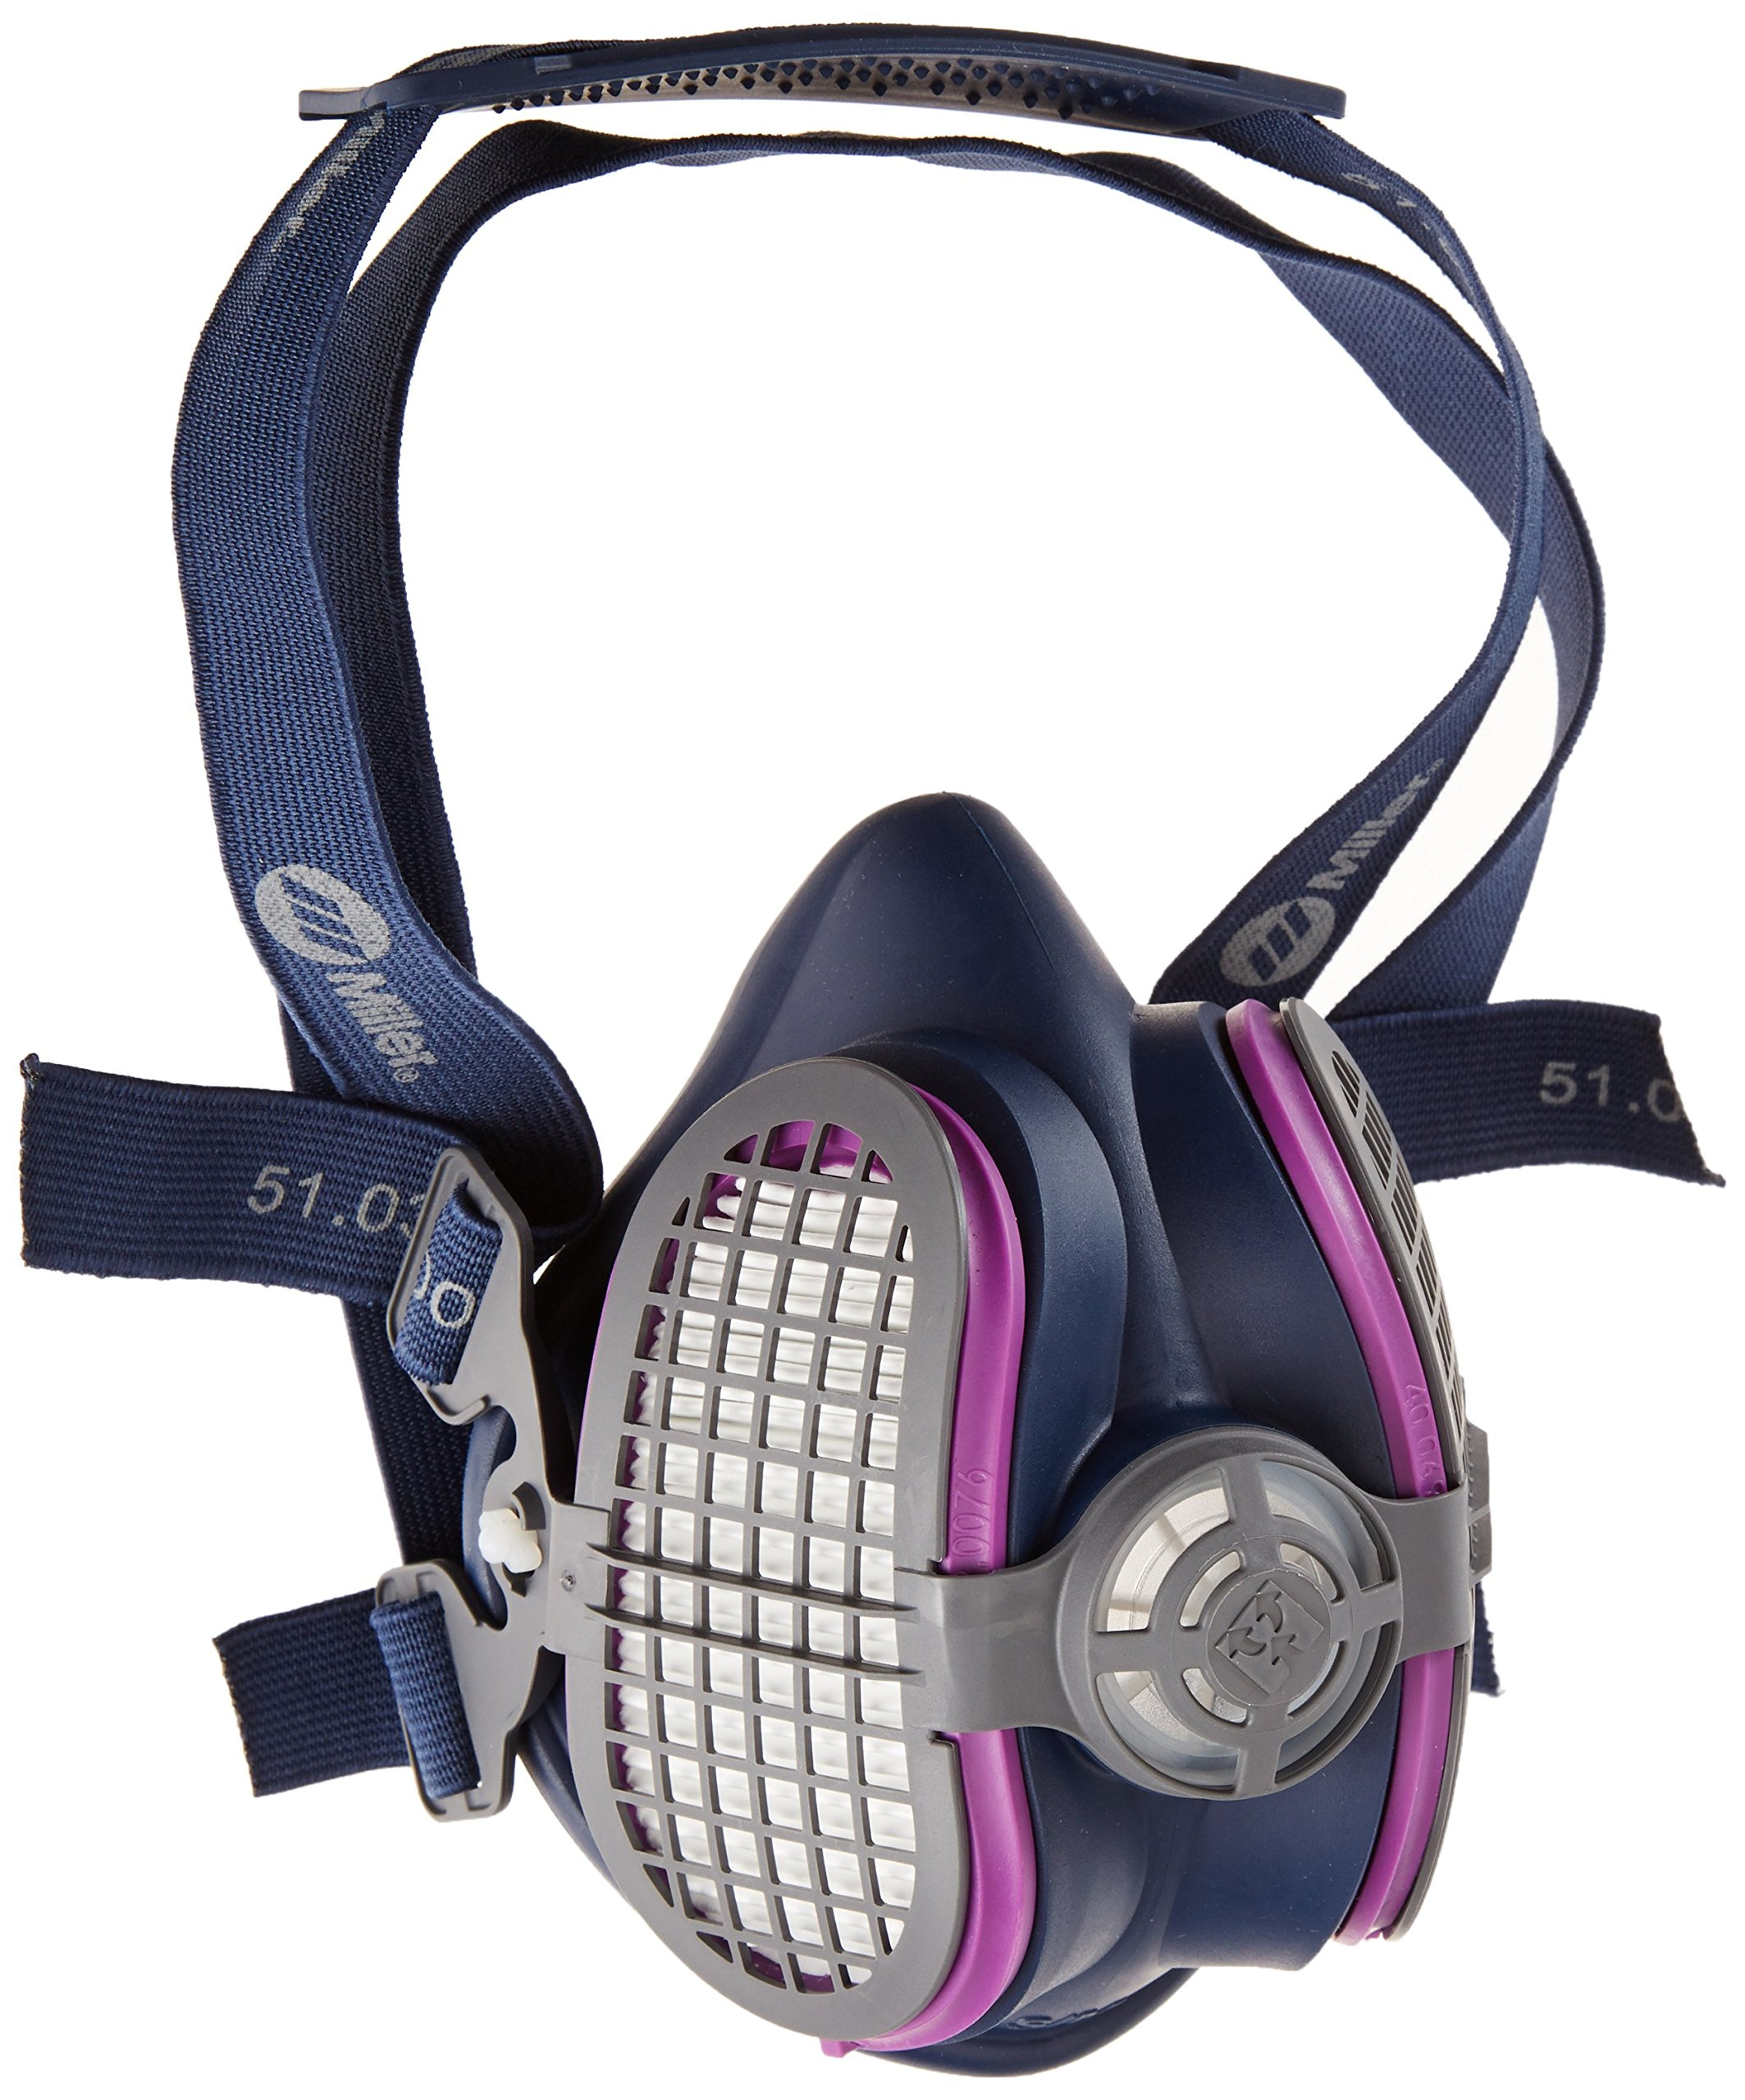 Half Mask Respirator Size Small/Medium by Miller Electric